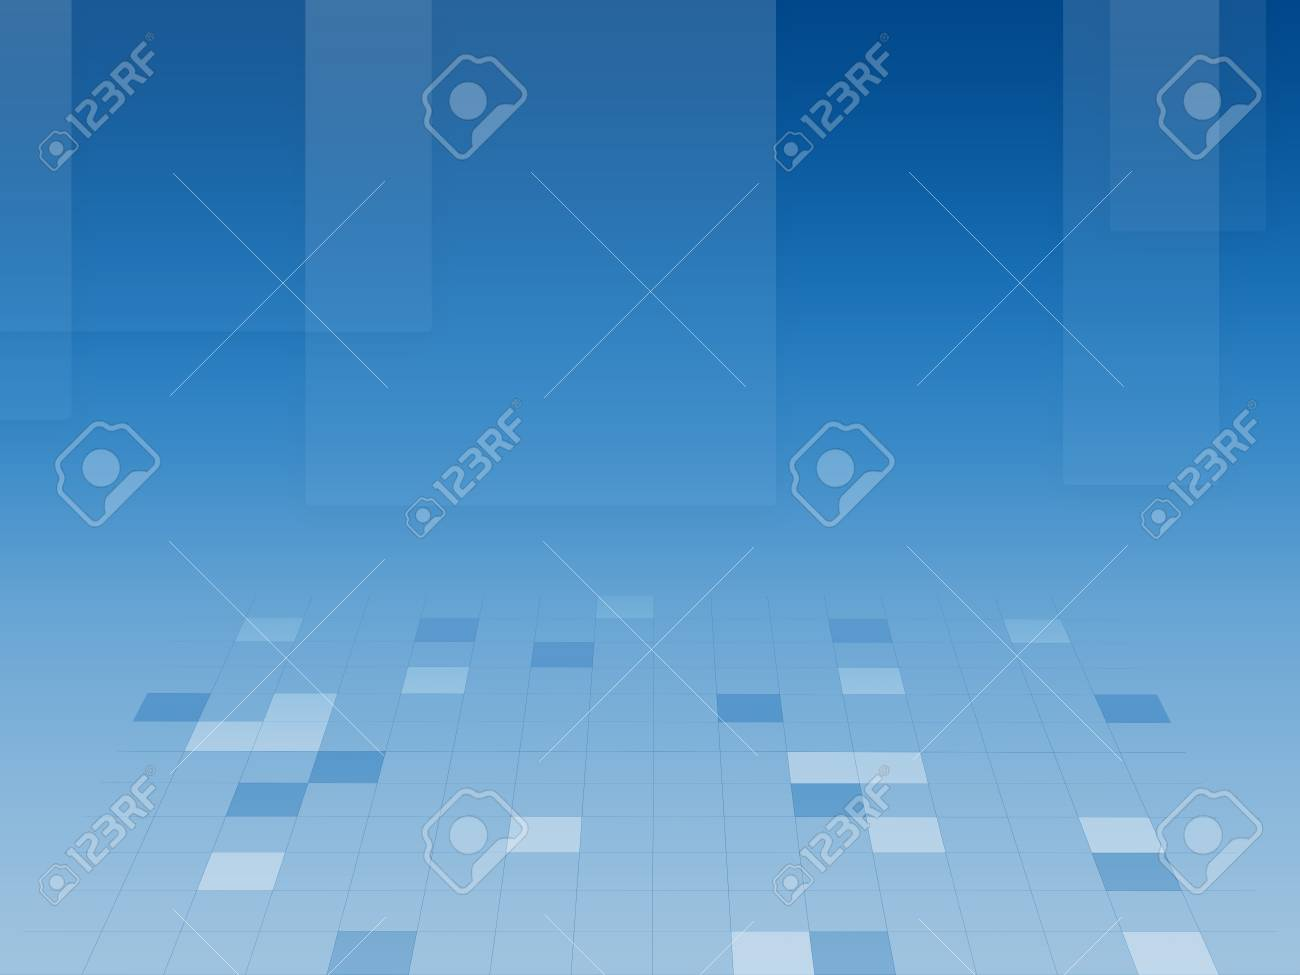 abstract blue background with square tile and mesh Stock Photo - 17774980